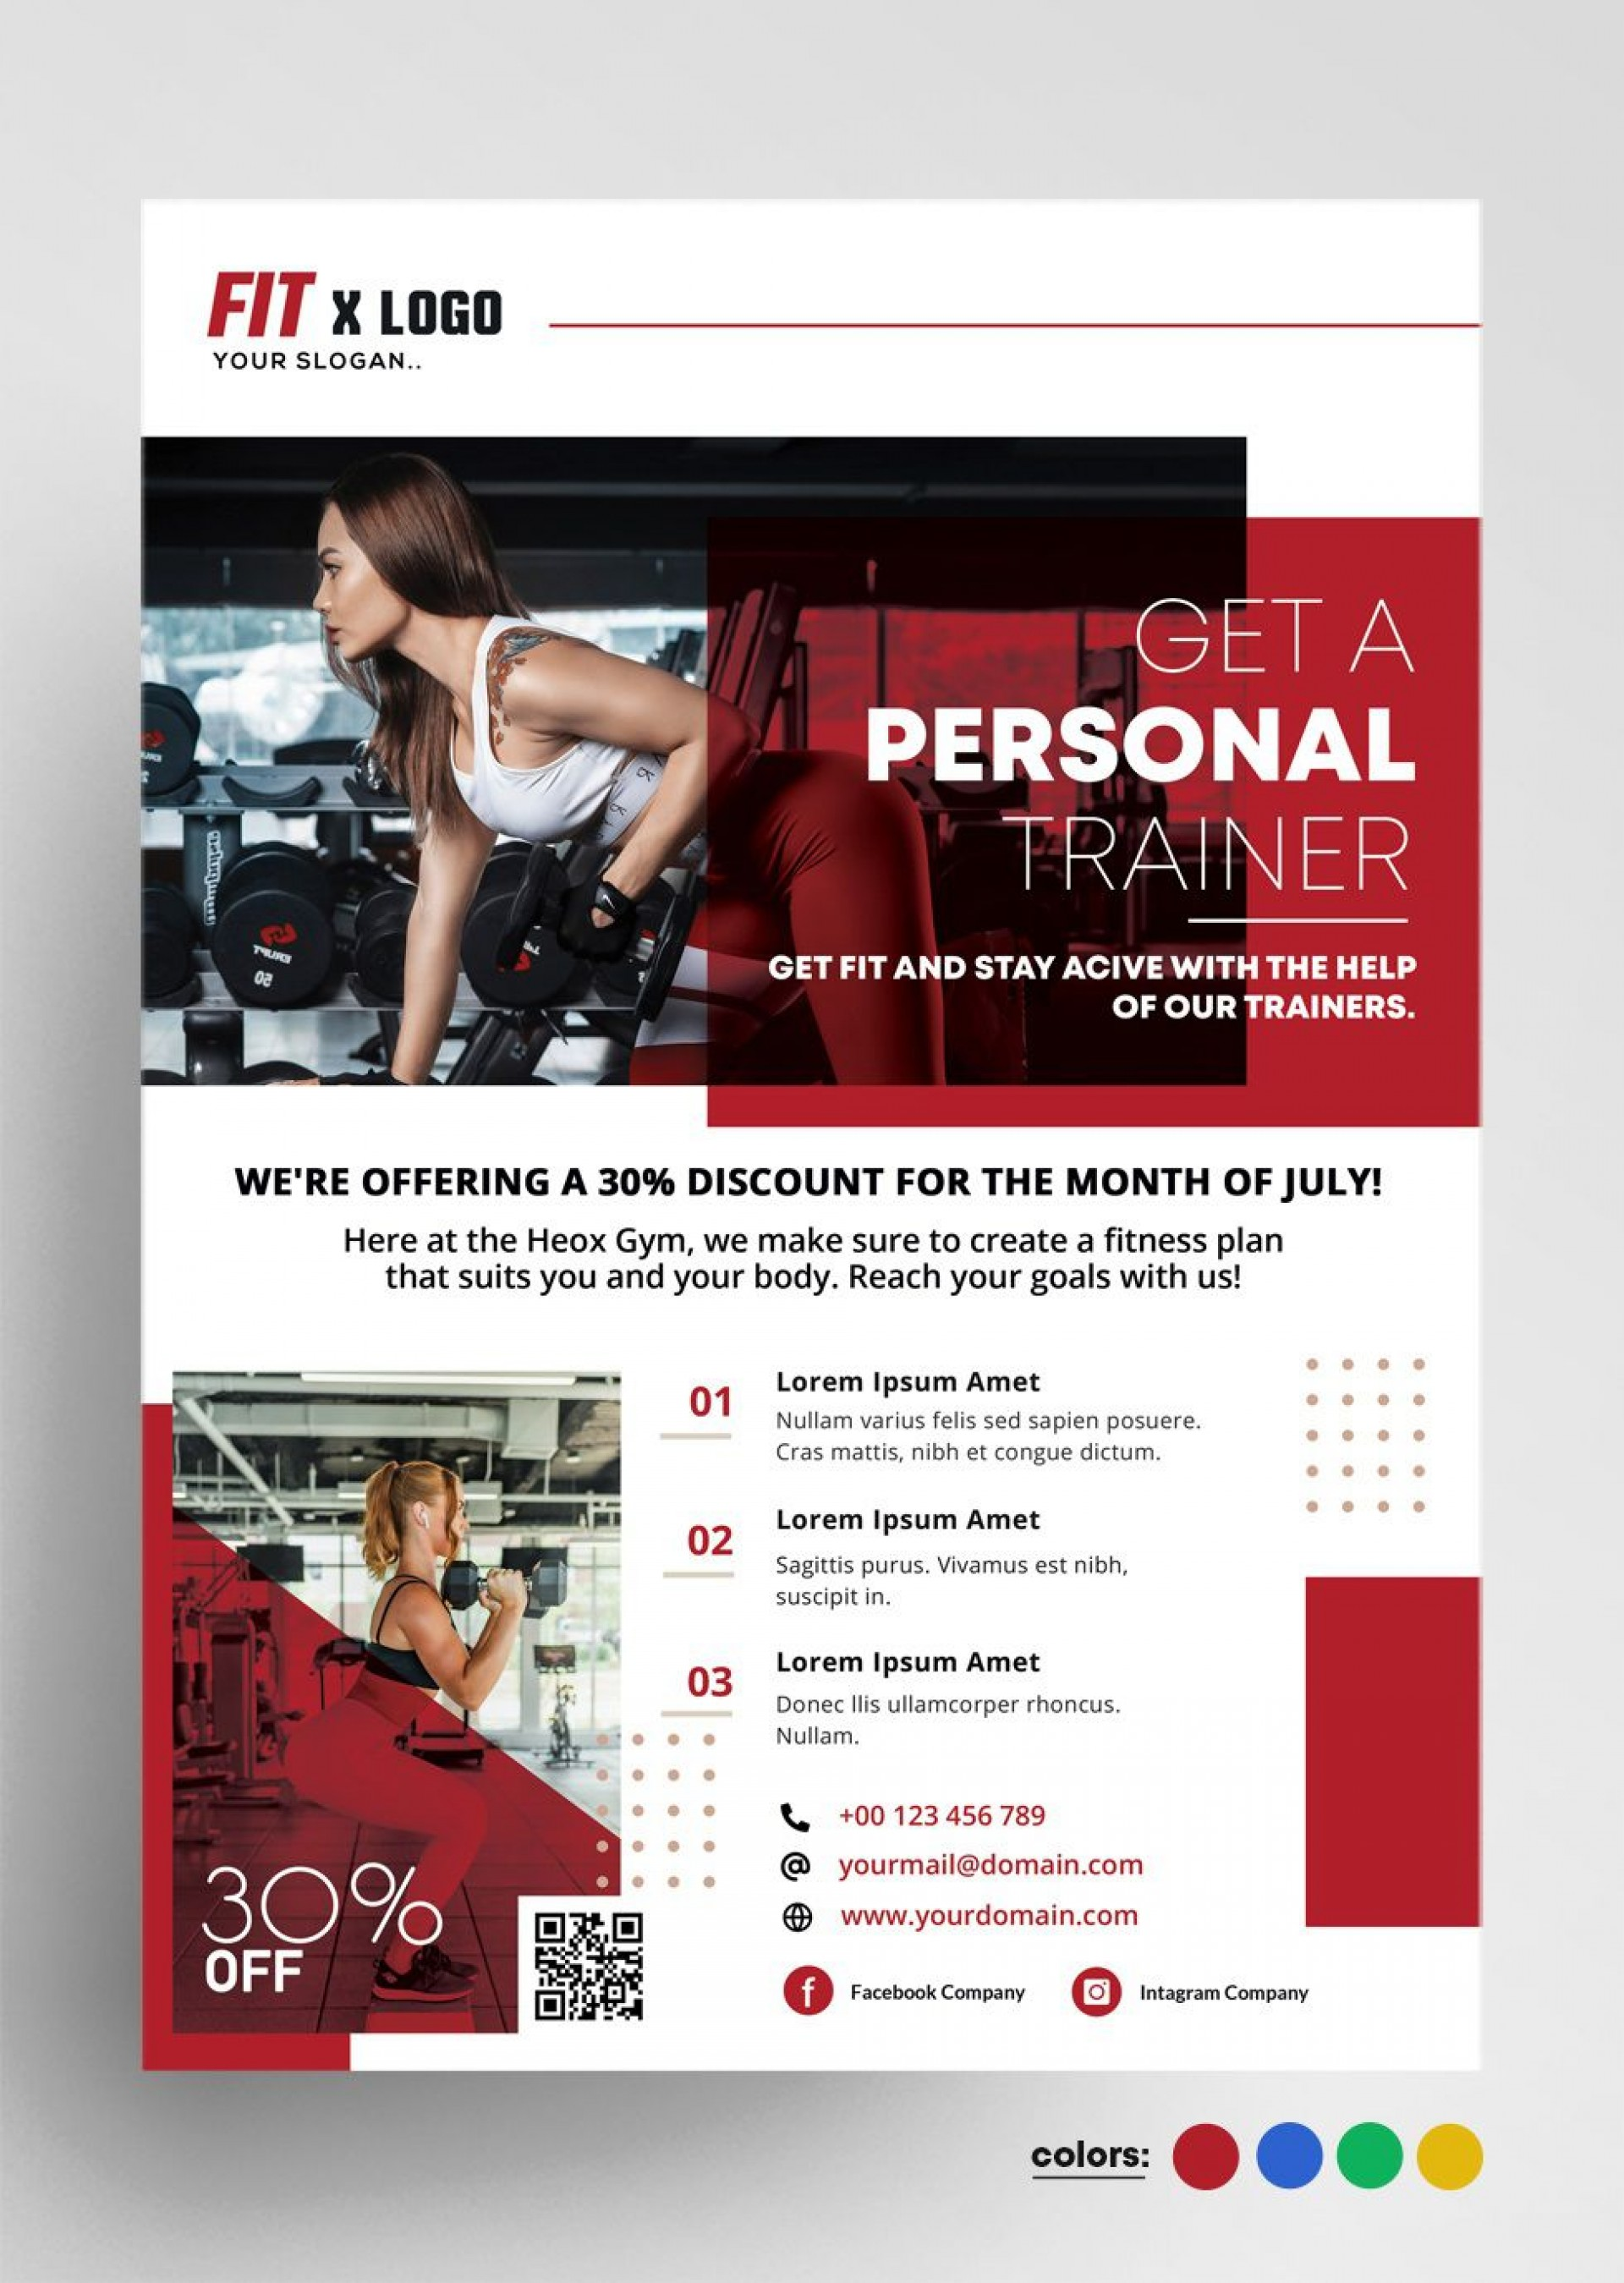 006 Sensational Personal Trainer Flyer Template Photo  Word Psd1920